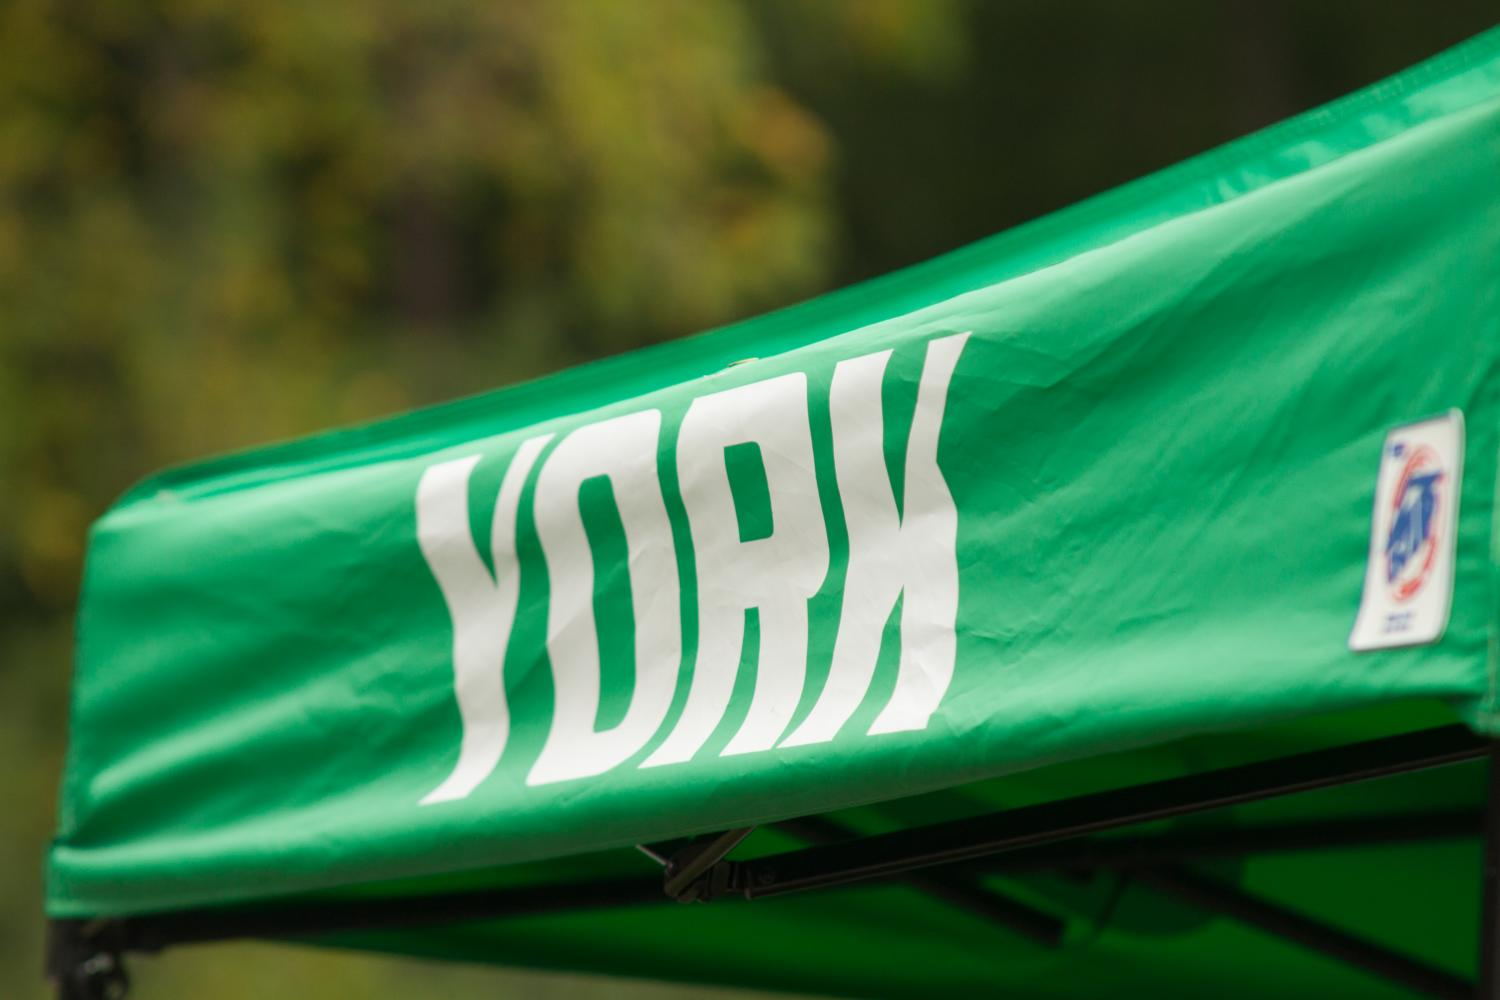 York has high hopes for this cross country season